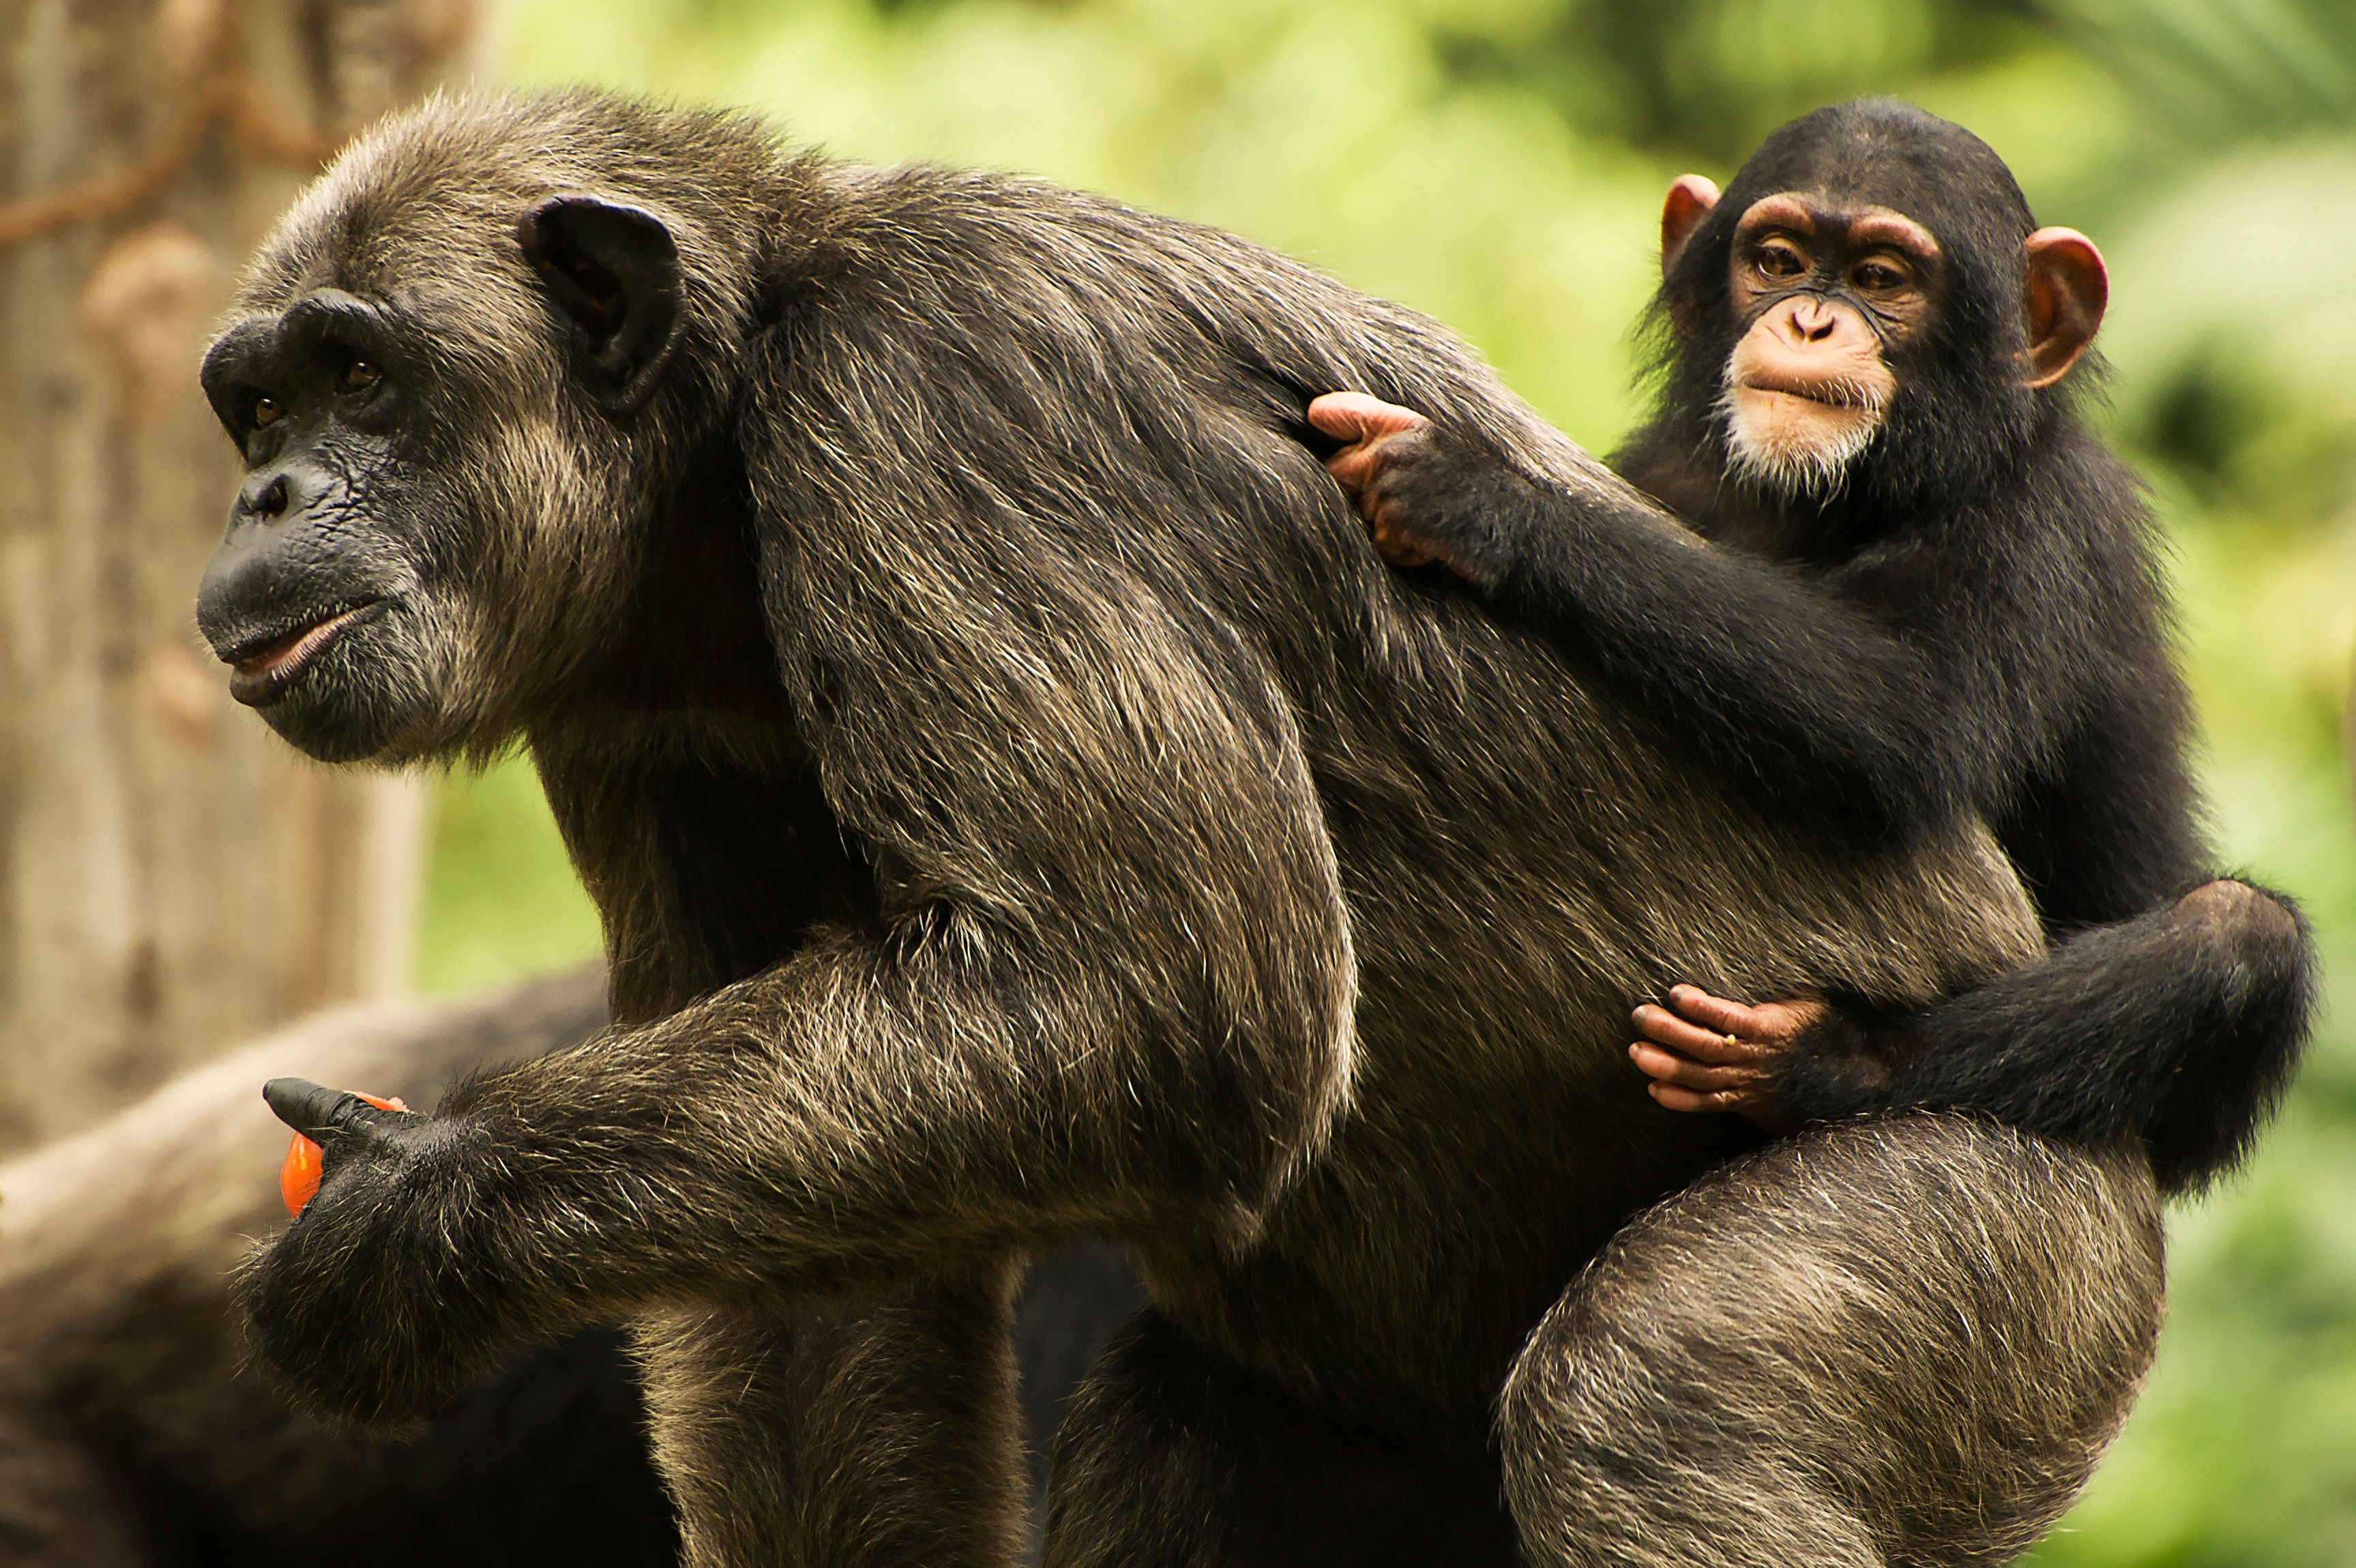 A chimpanzee mother and baby.